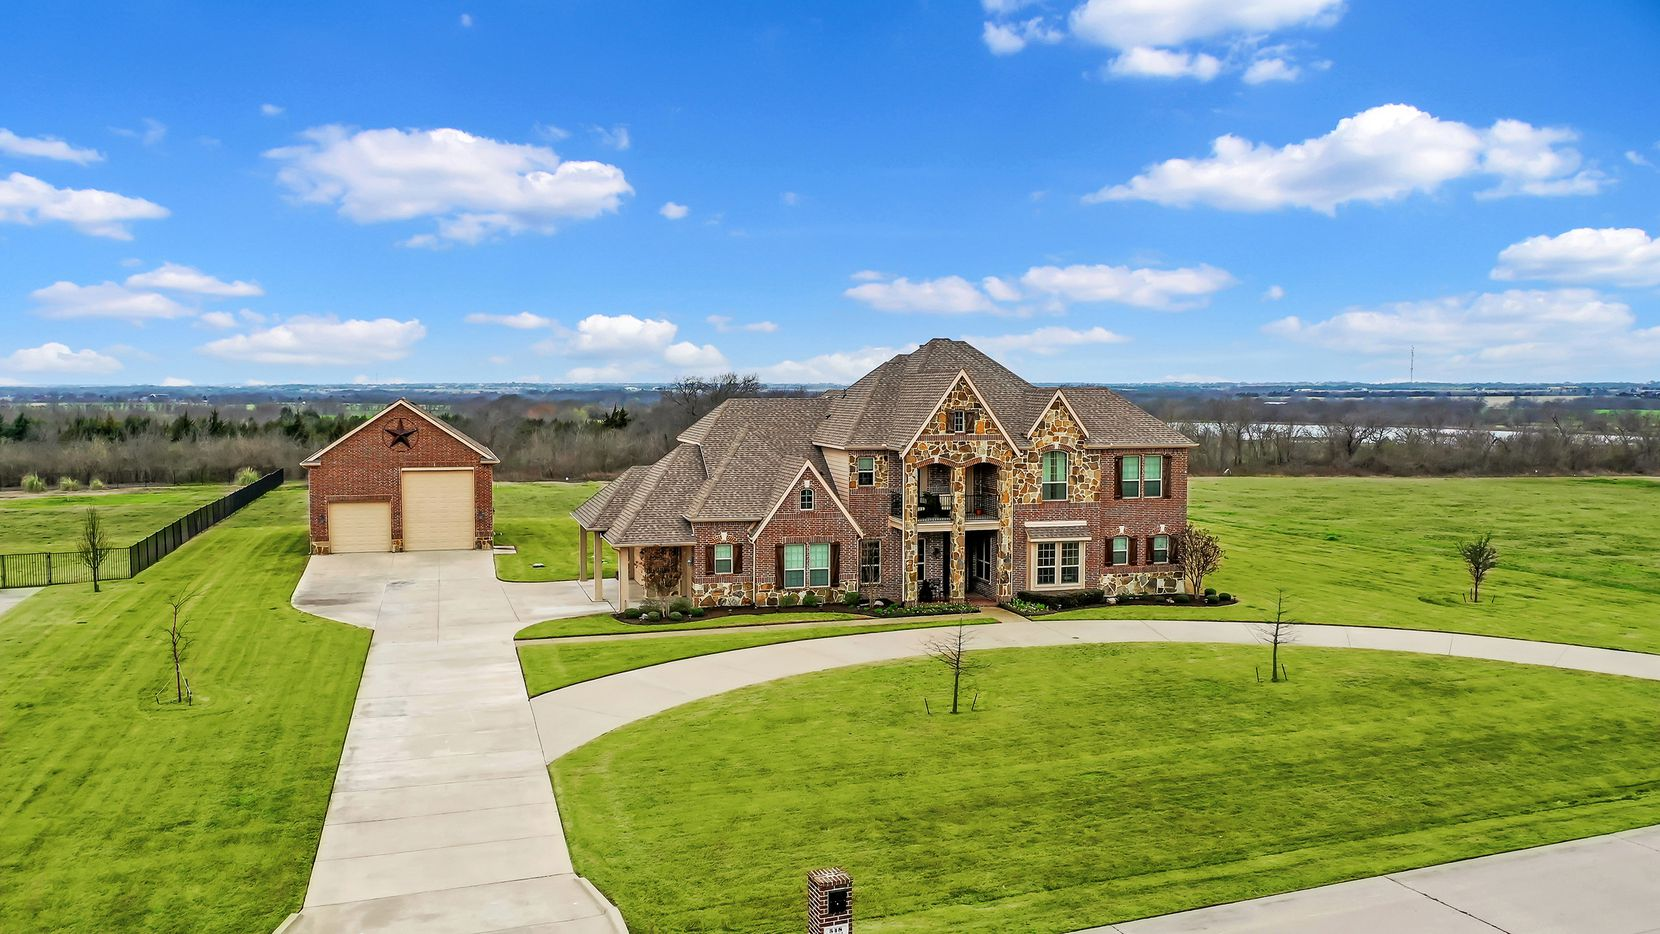 The home at 548 Chisholm Ridge Drive in Rockwall is offered for $724,900. Amenities include a pool with water features and a detached RV garage with a shop.